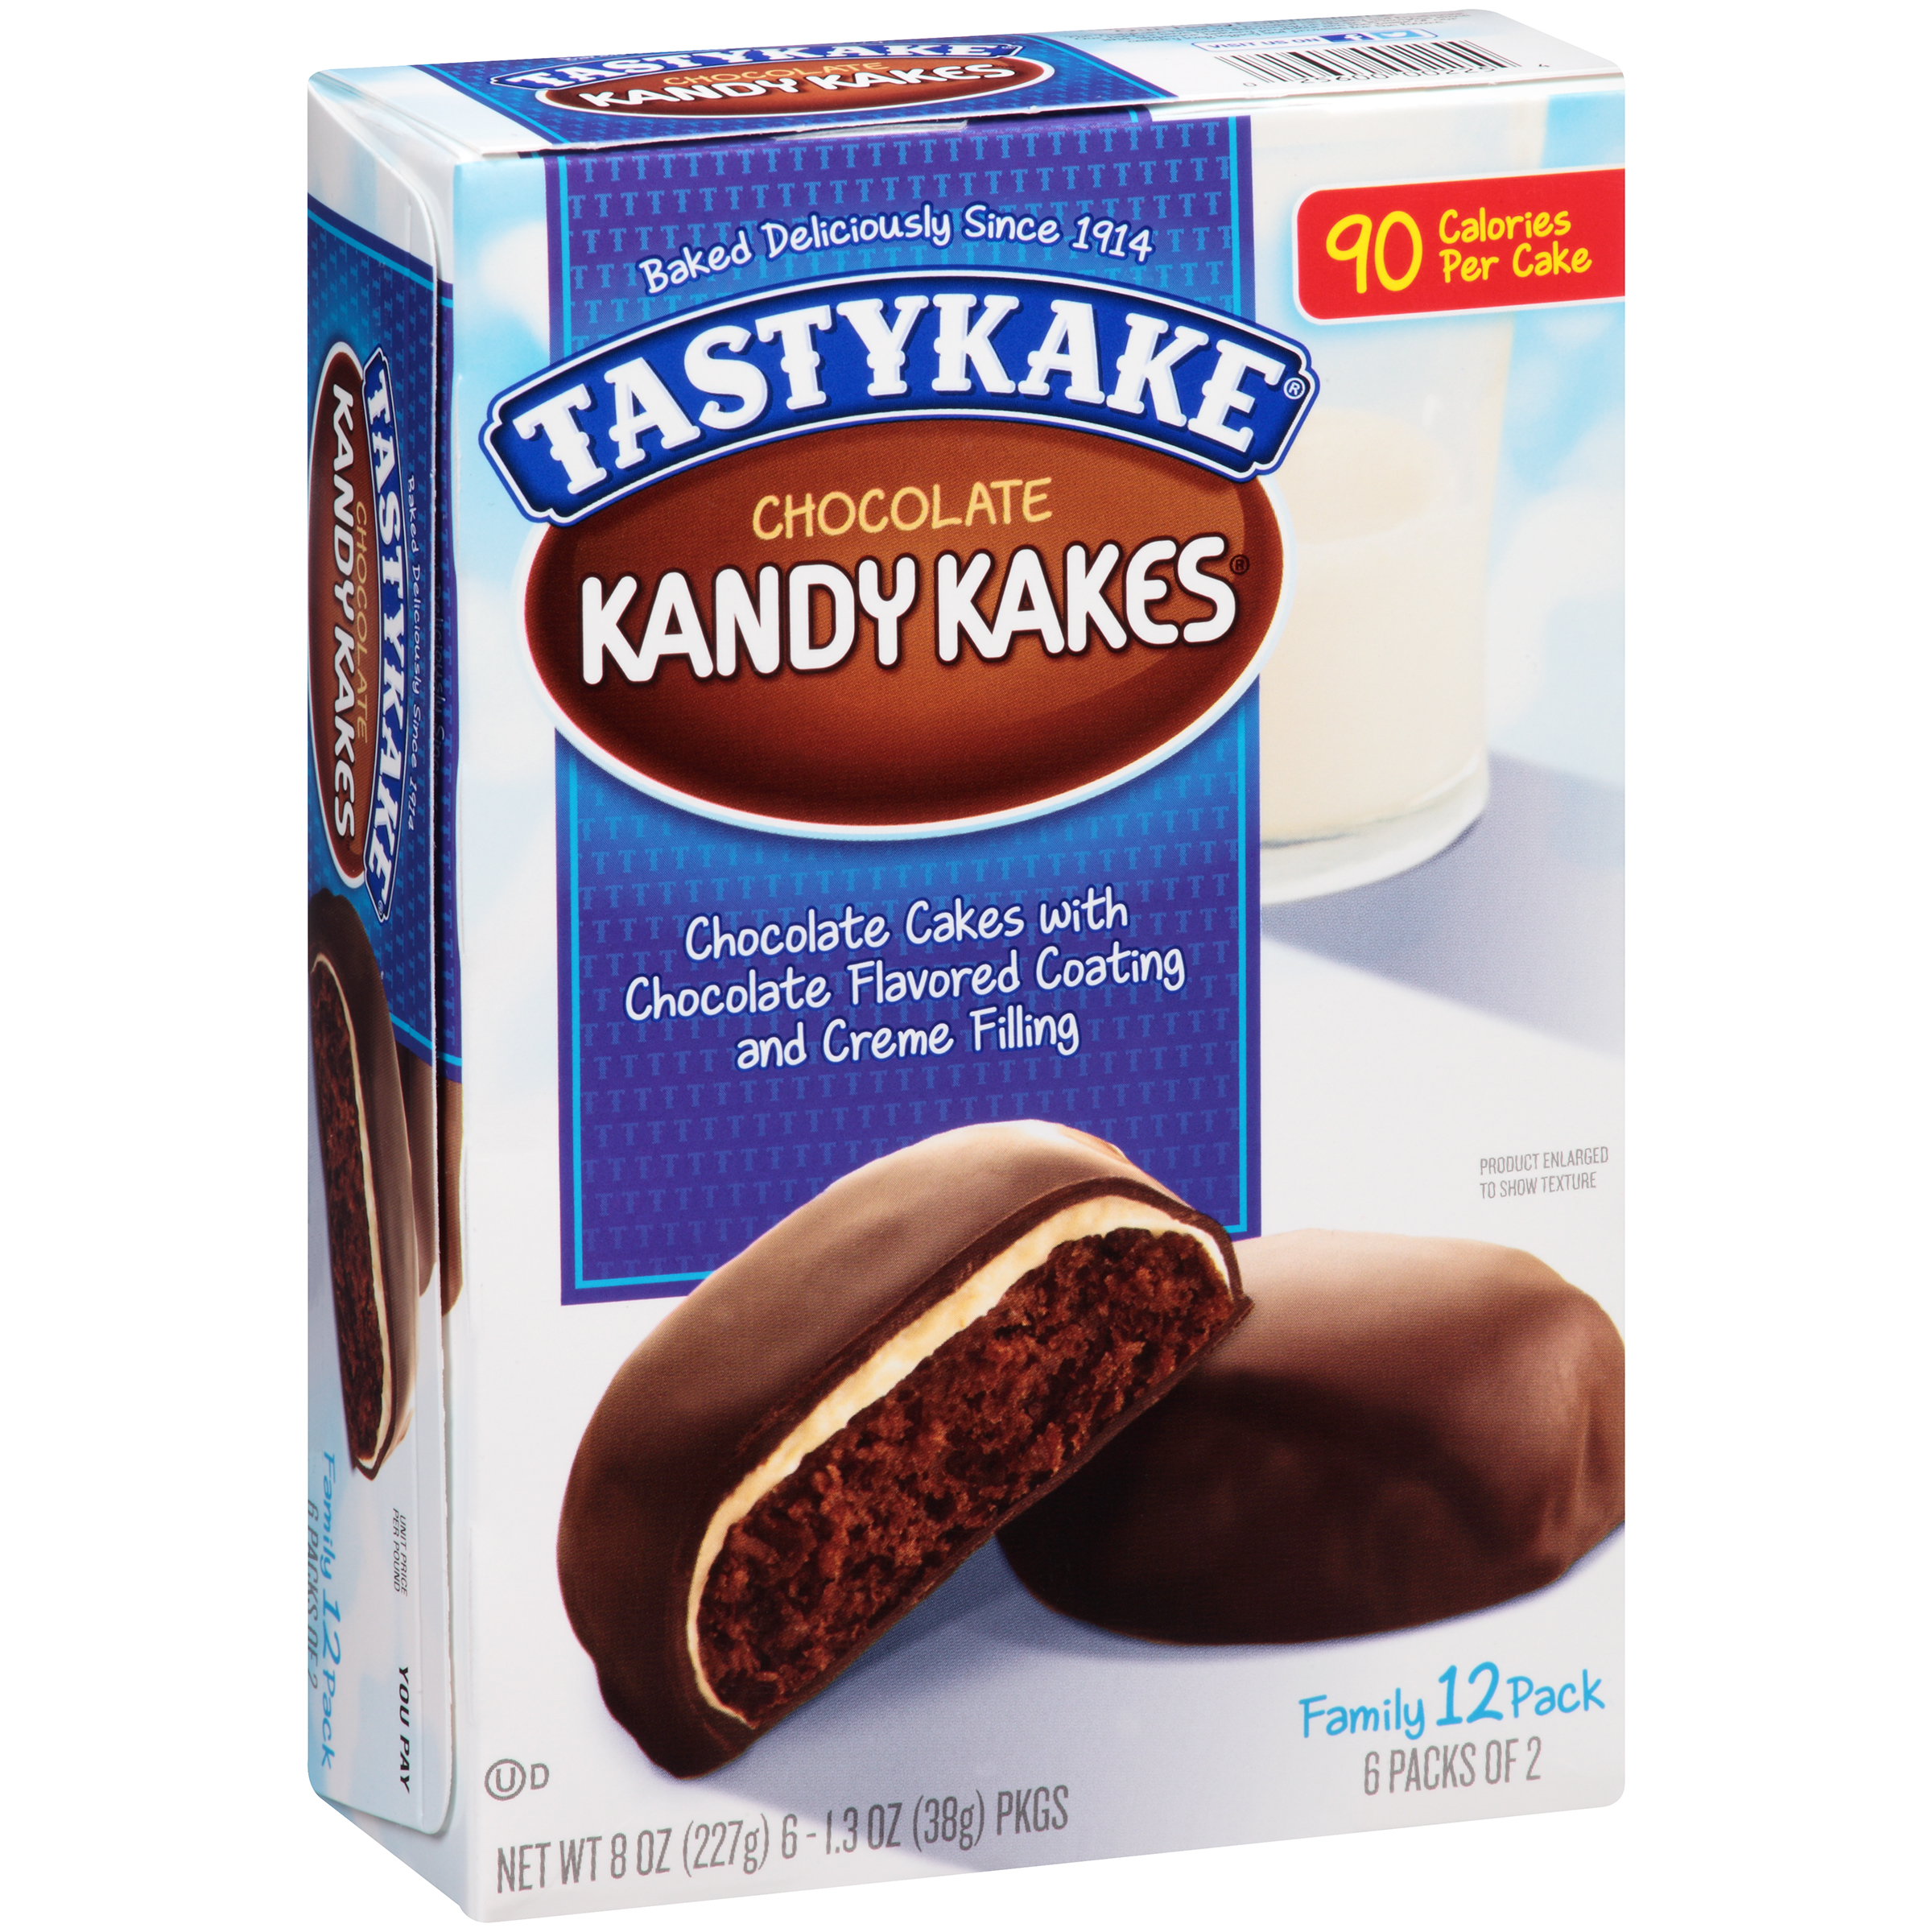 Tastykake Chocolate Kandy Kakes, 1.33 oz, 6 ct